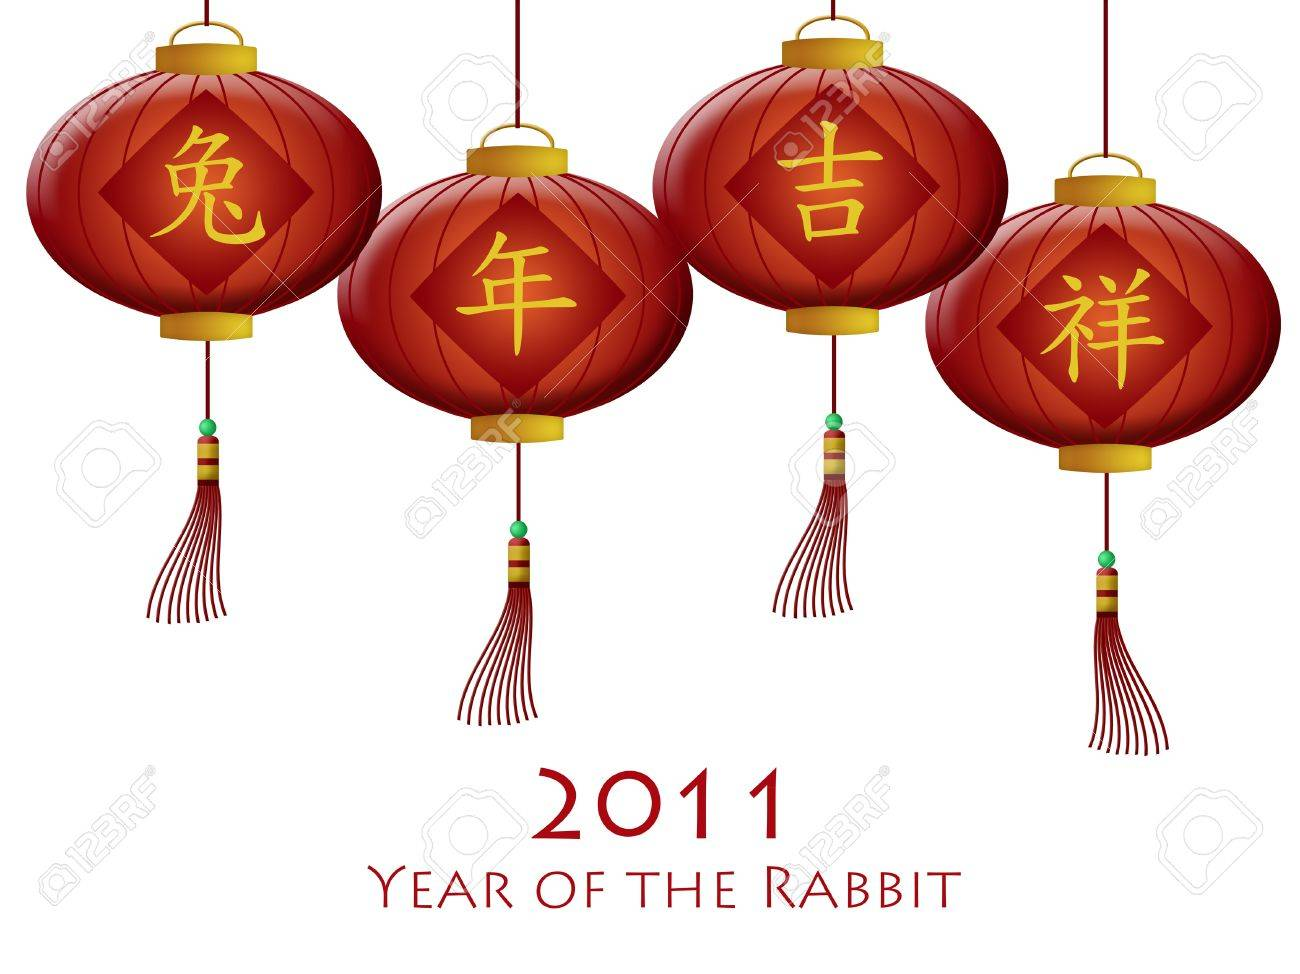 Happy Chinese New Year 2011 Rabbit with Red Lanterns Illustration Stock Illustration - 8639609